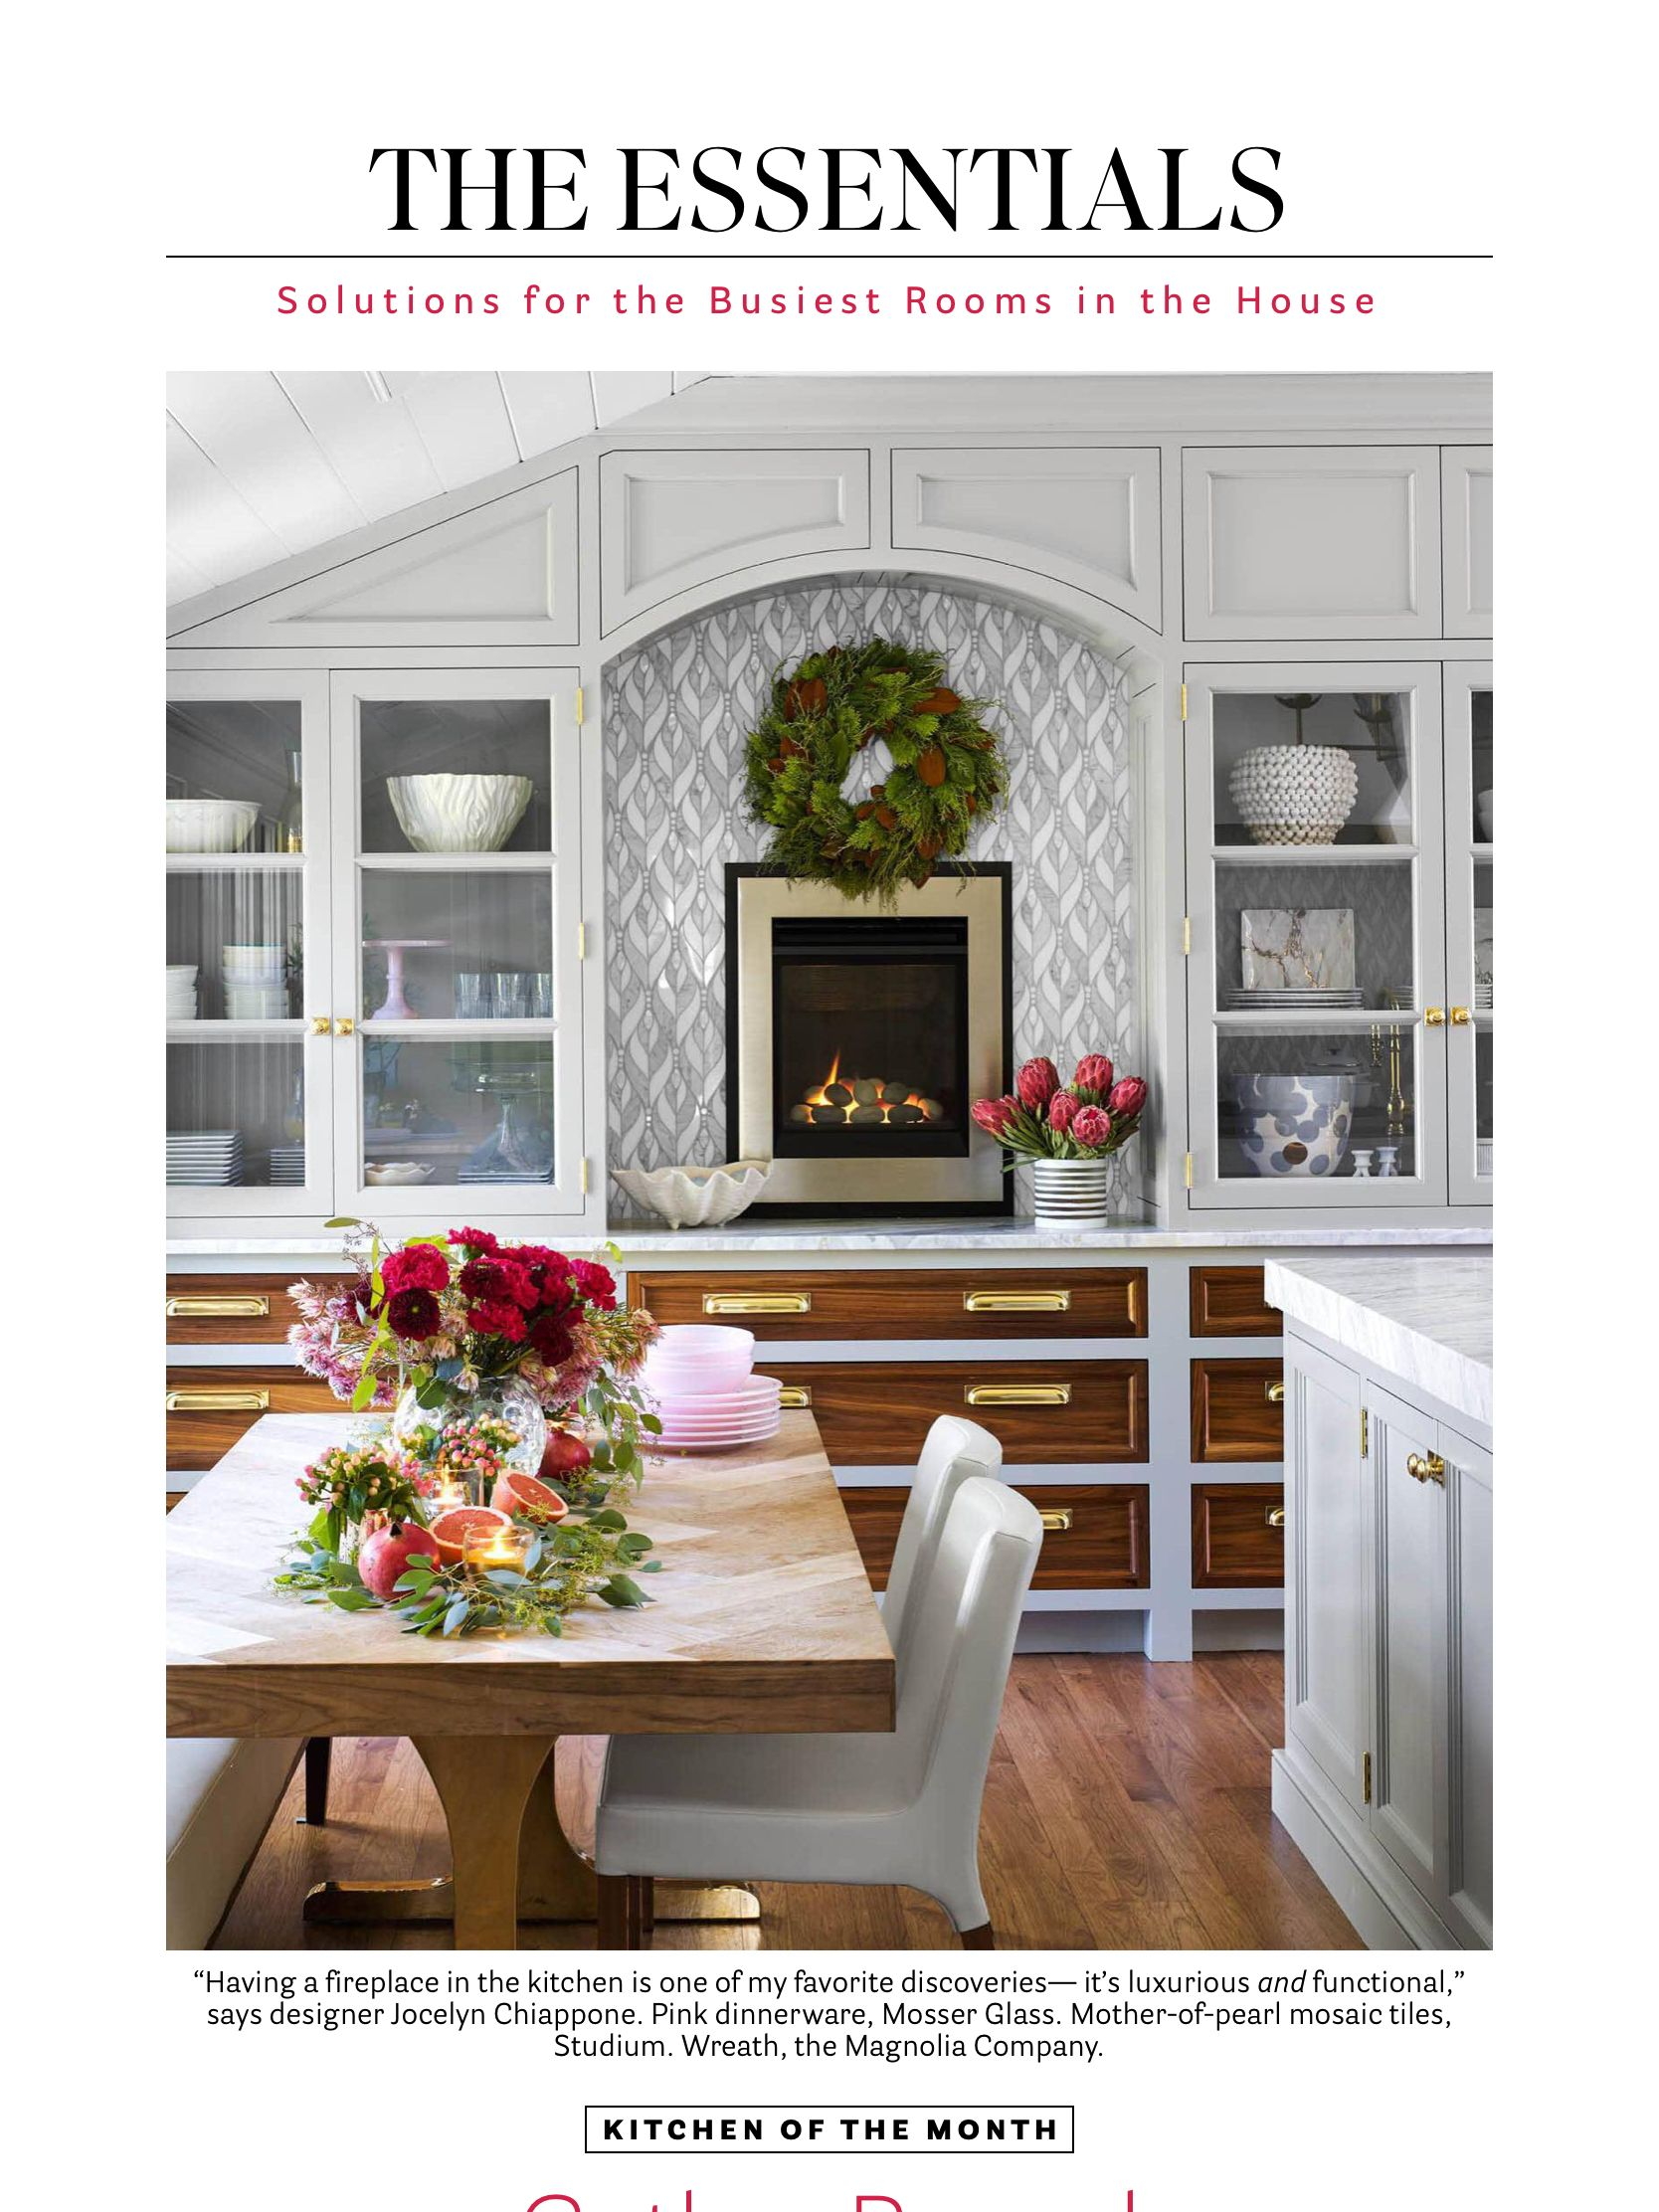 """Kitchen of the Month"" from House Beautiful, Dec 2018"